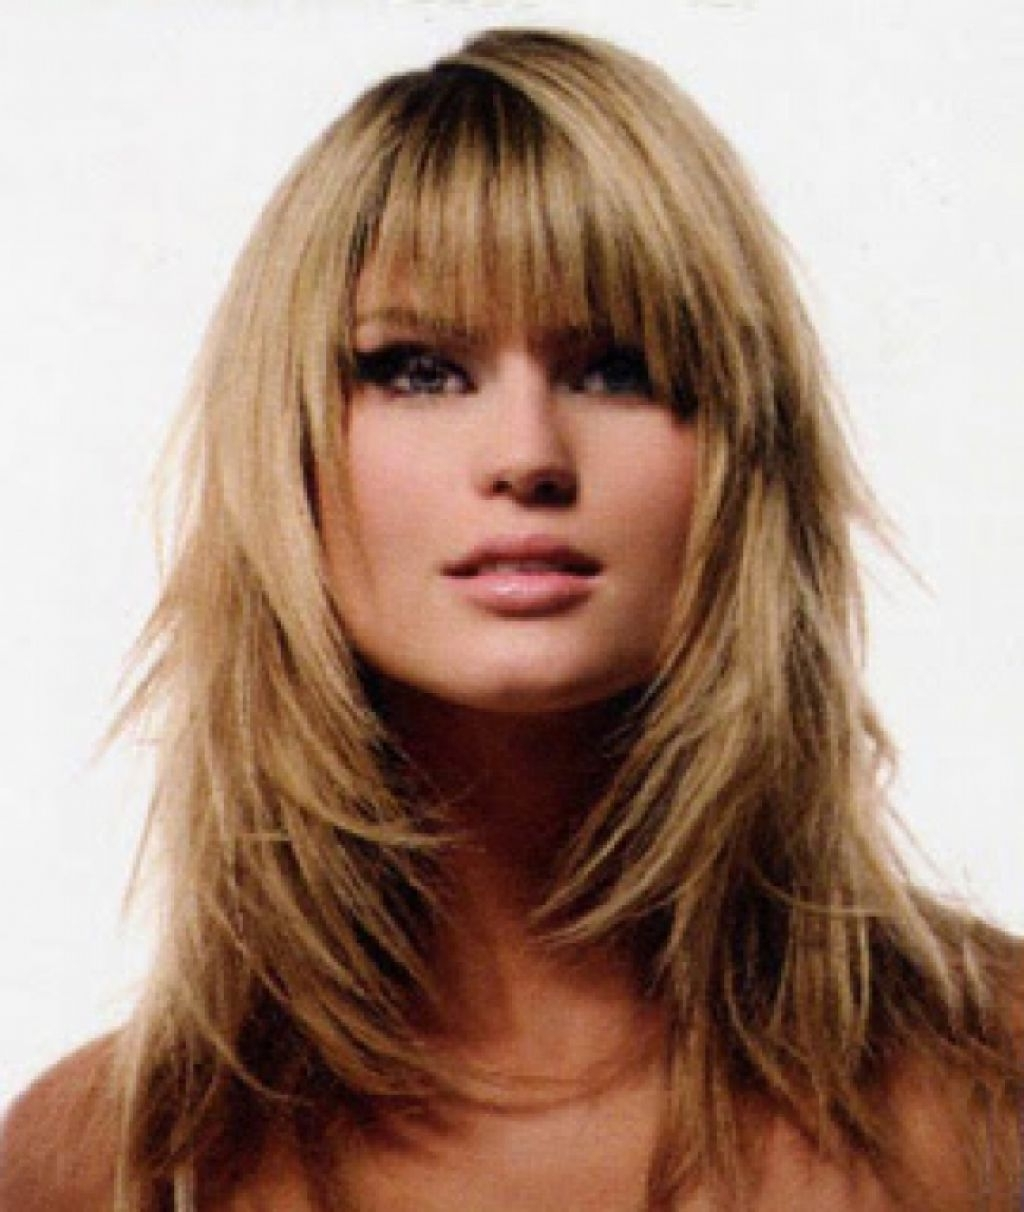 Long Shaggy Hairstyle Cuts Ideas For Ladies – Hairstyle Ideas For Regarding Favorite Shaggy Hairstyles For Oval Faces (View 7 of 15)